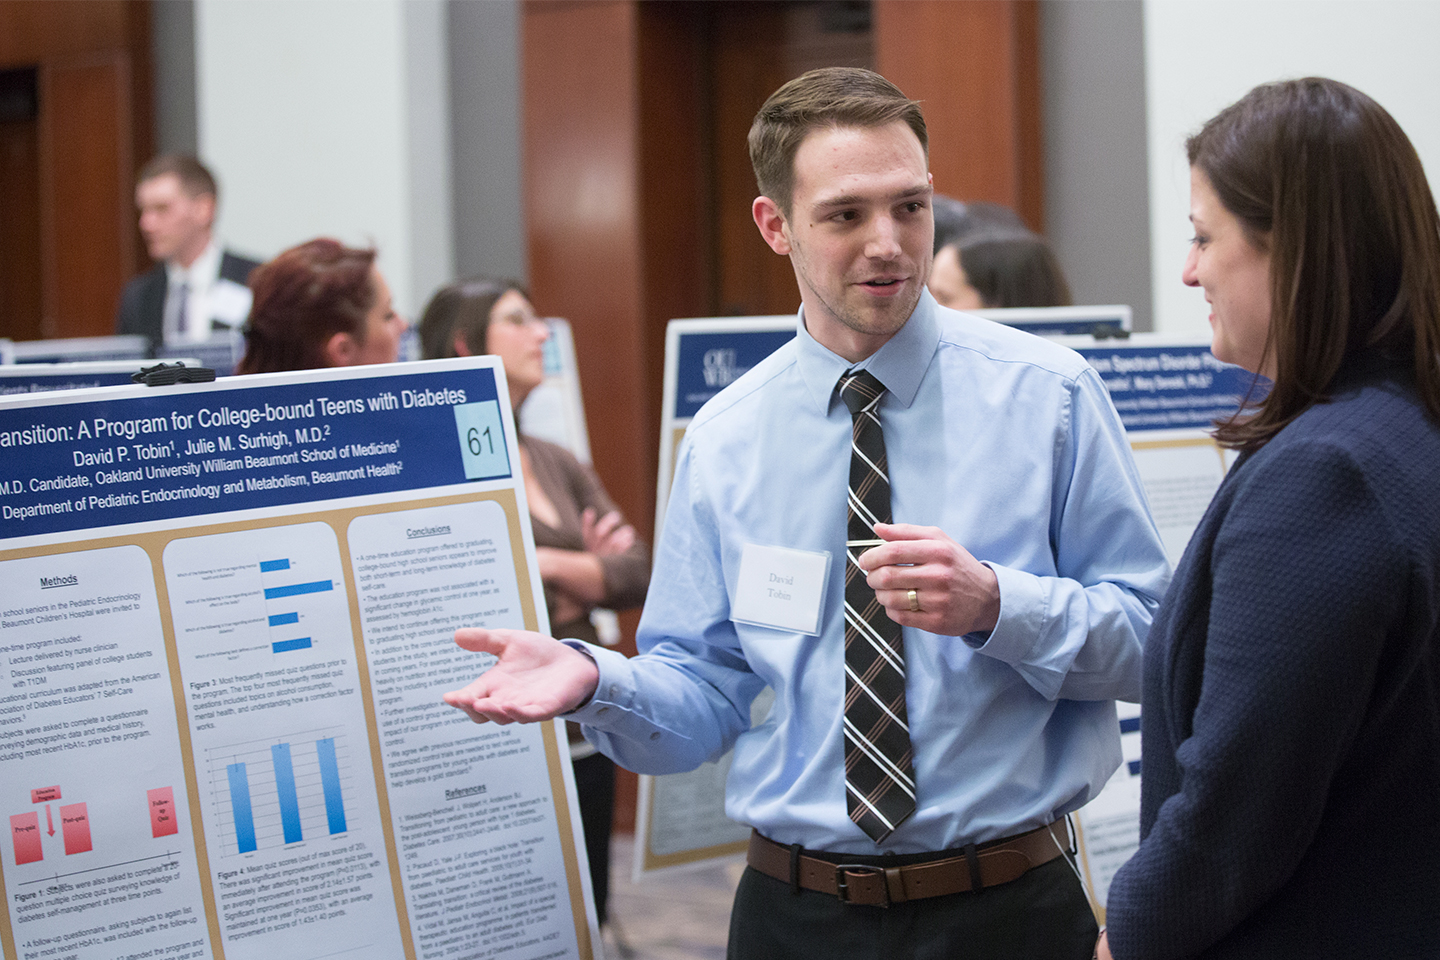 David Tobin explains research to Biomedical Science faculty Kara Sawarynski, Ph.D.